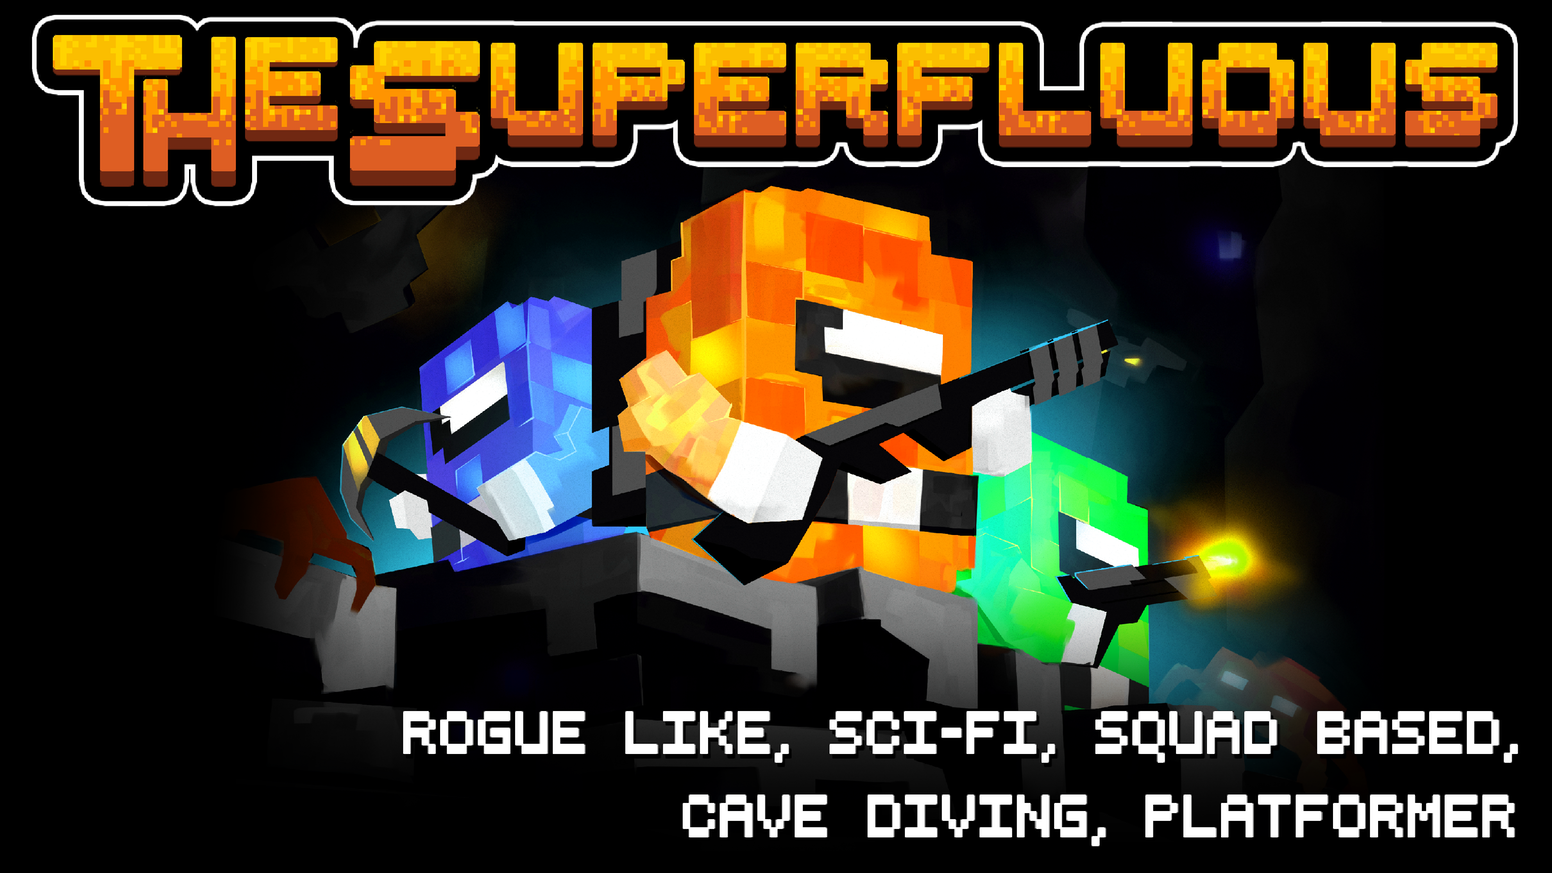 The [Soo-pur-floo-uh s] is a cave-diving, sci-fi, squad based, rogue, platformer with jet packs, and a fun story. PC DEMO AVAILABLE